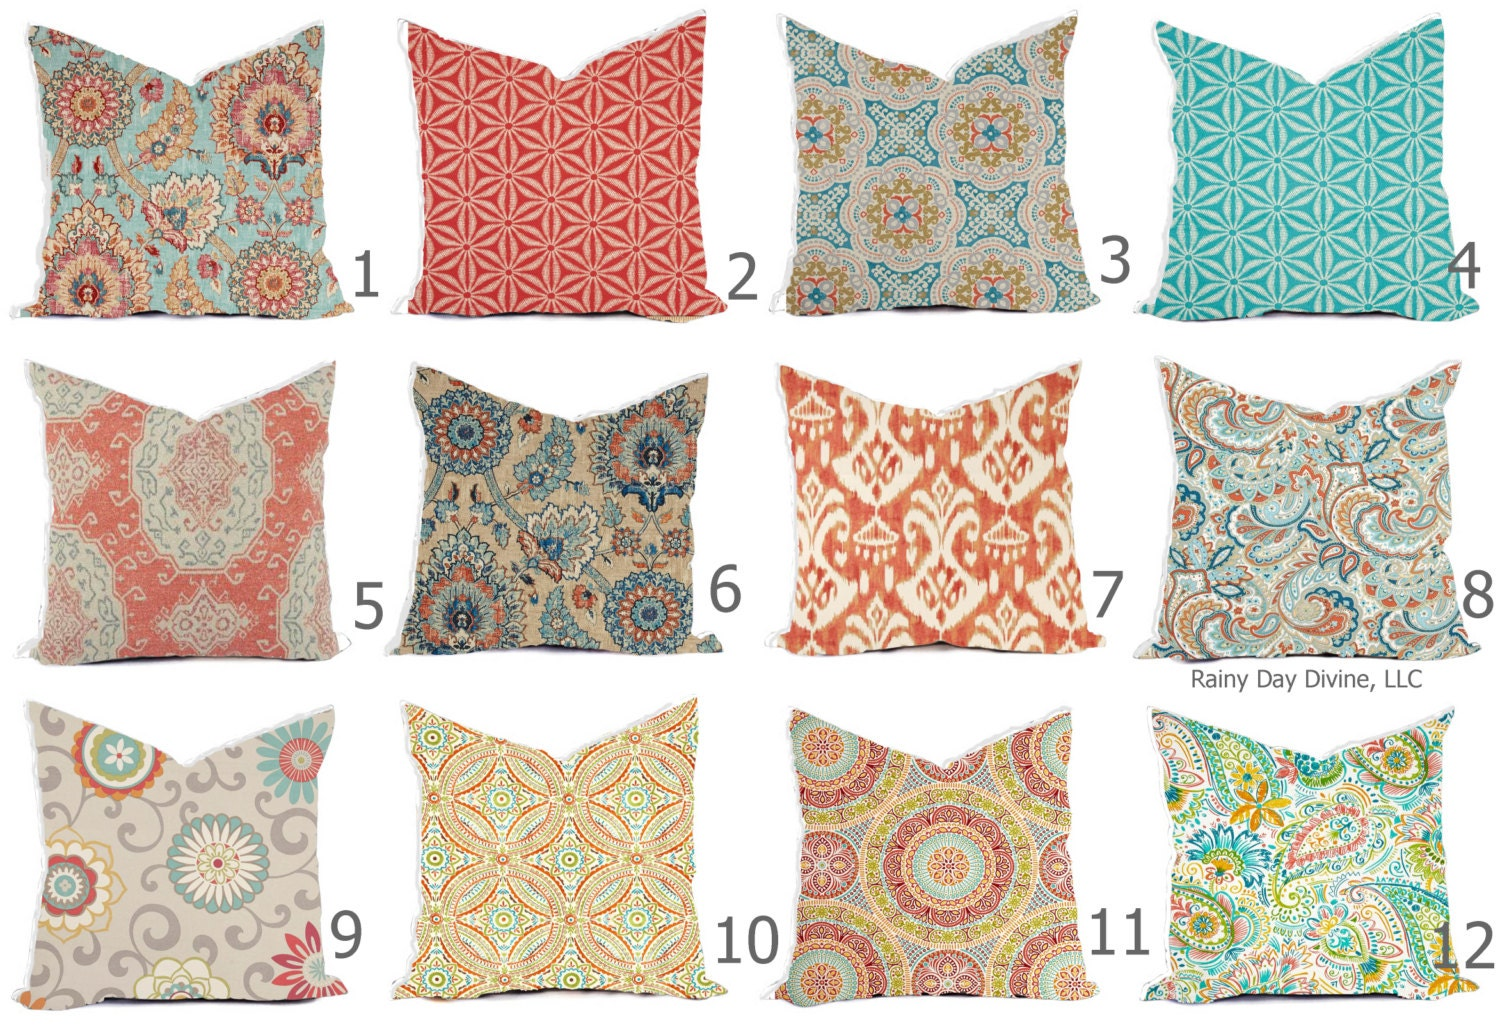 Pillows Covers Outdoor Indoor Pillow Covers Custom 16x16